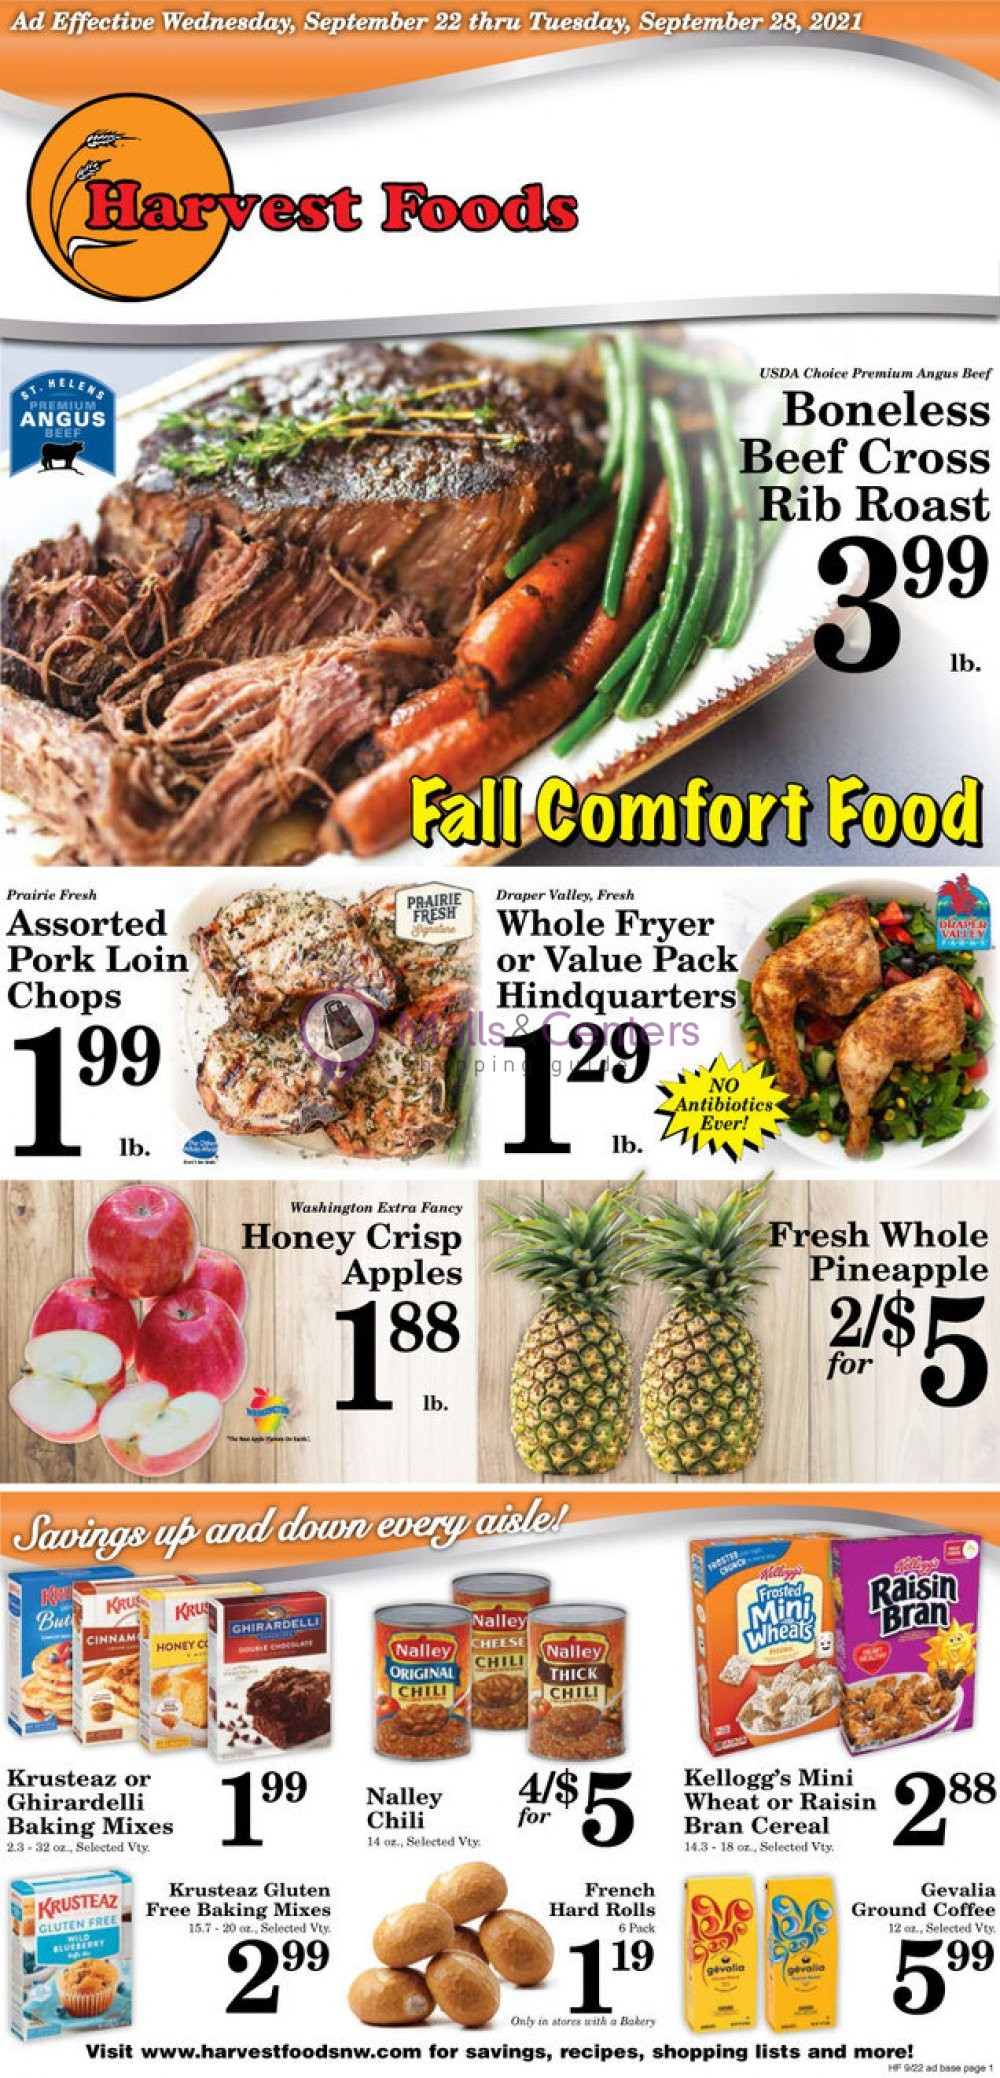 weekly ads Harvest Foods - page 1 - mallscenters.com